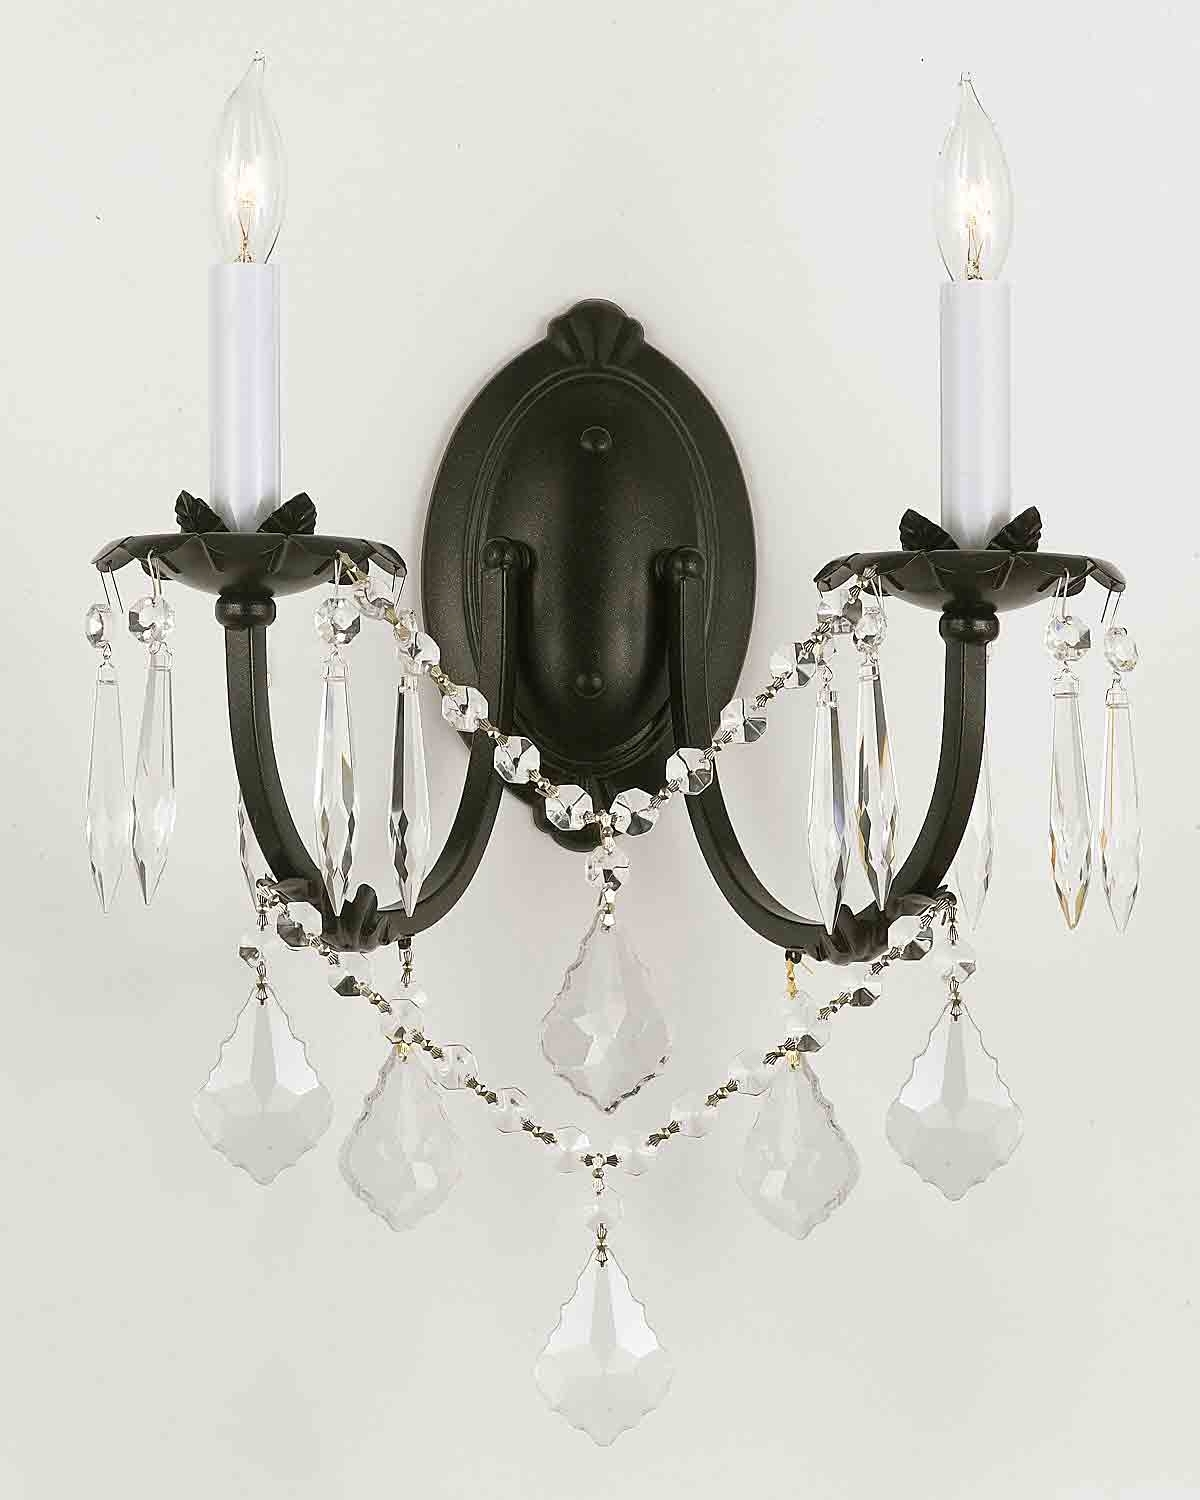 Latest Wall Mounted Chandelier Lighting With Regard To Fresh Elegant Wall Mounted Chandelier Lighting Hk1L1 # (View 5 of 20)